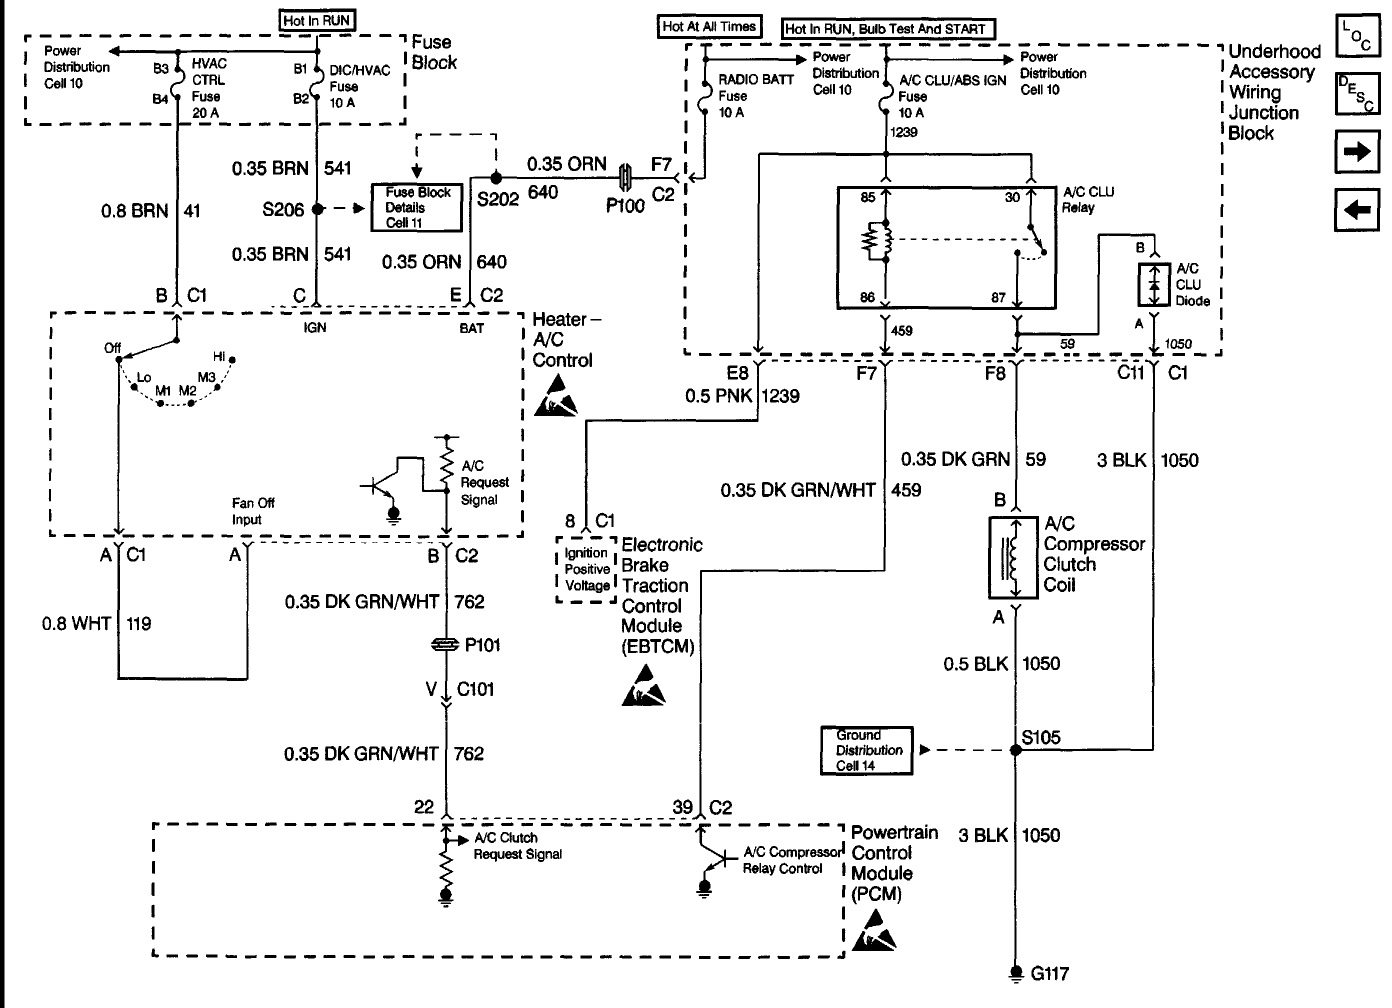 2005 Grand Prix Ac Diagram Starting Know About Wiring F250 Engine A C Operation Is Intermittent Refrigerant Charge Correct And Rh Justanswer Com Blower Motor Radio